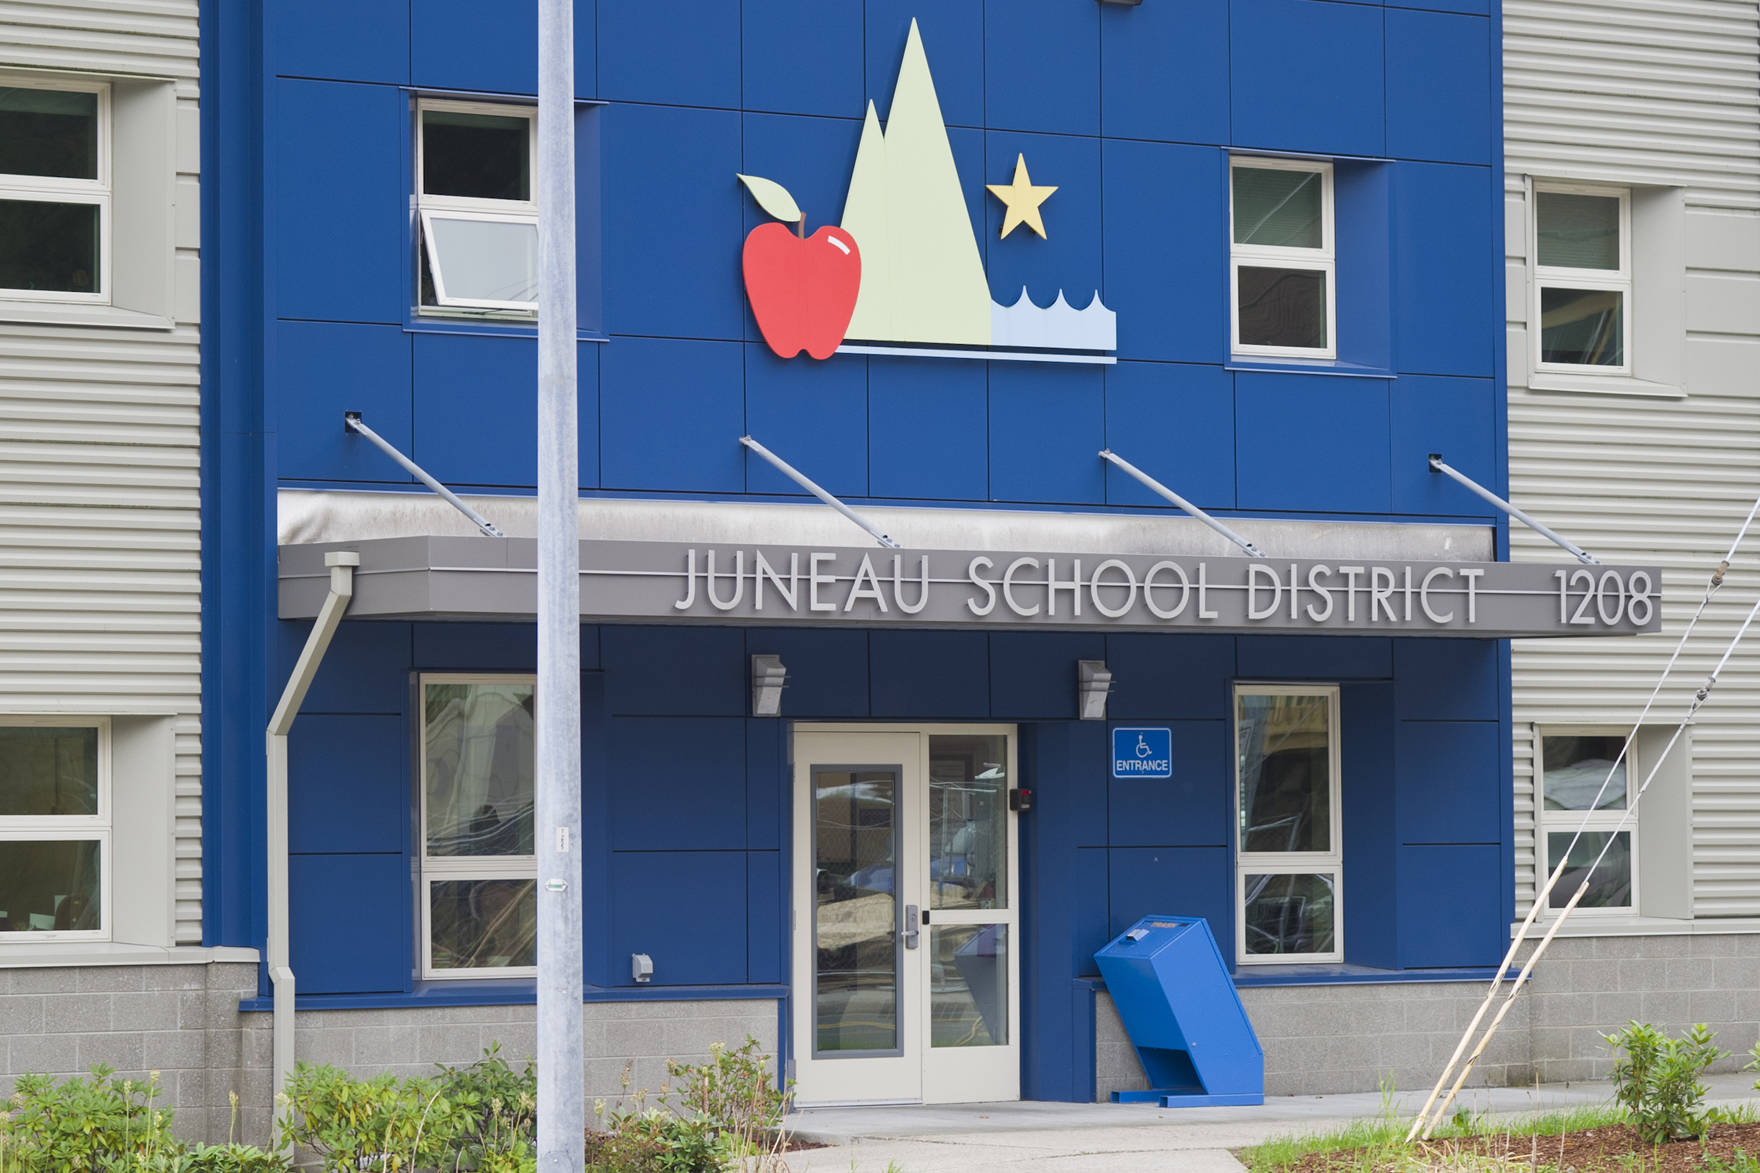 The Juneau School District's adminstration buidling is at the corner of Glacier Avenue and 12th Street. (Michael Penn | Juneau Empire)